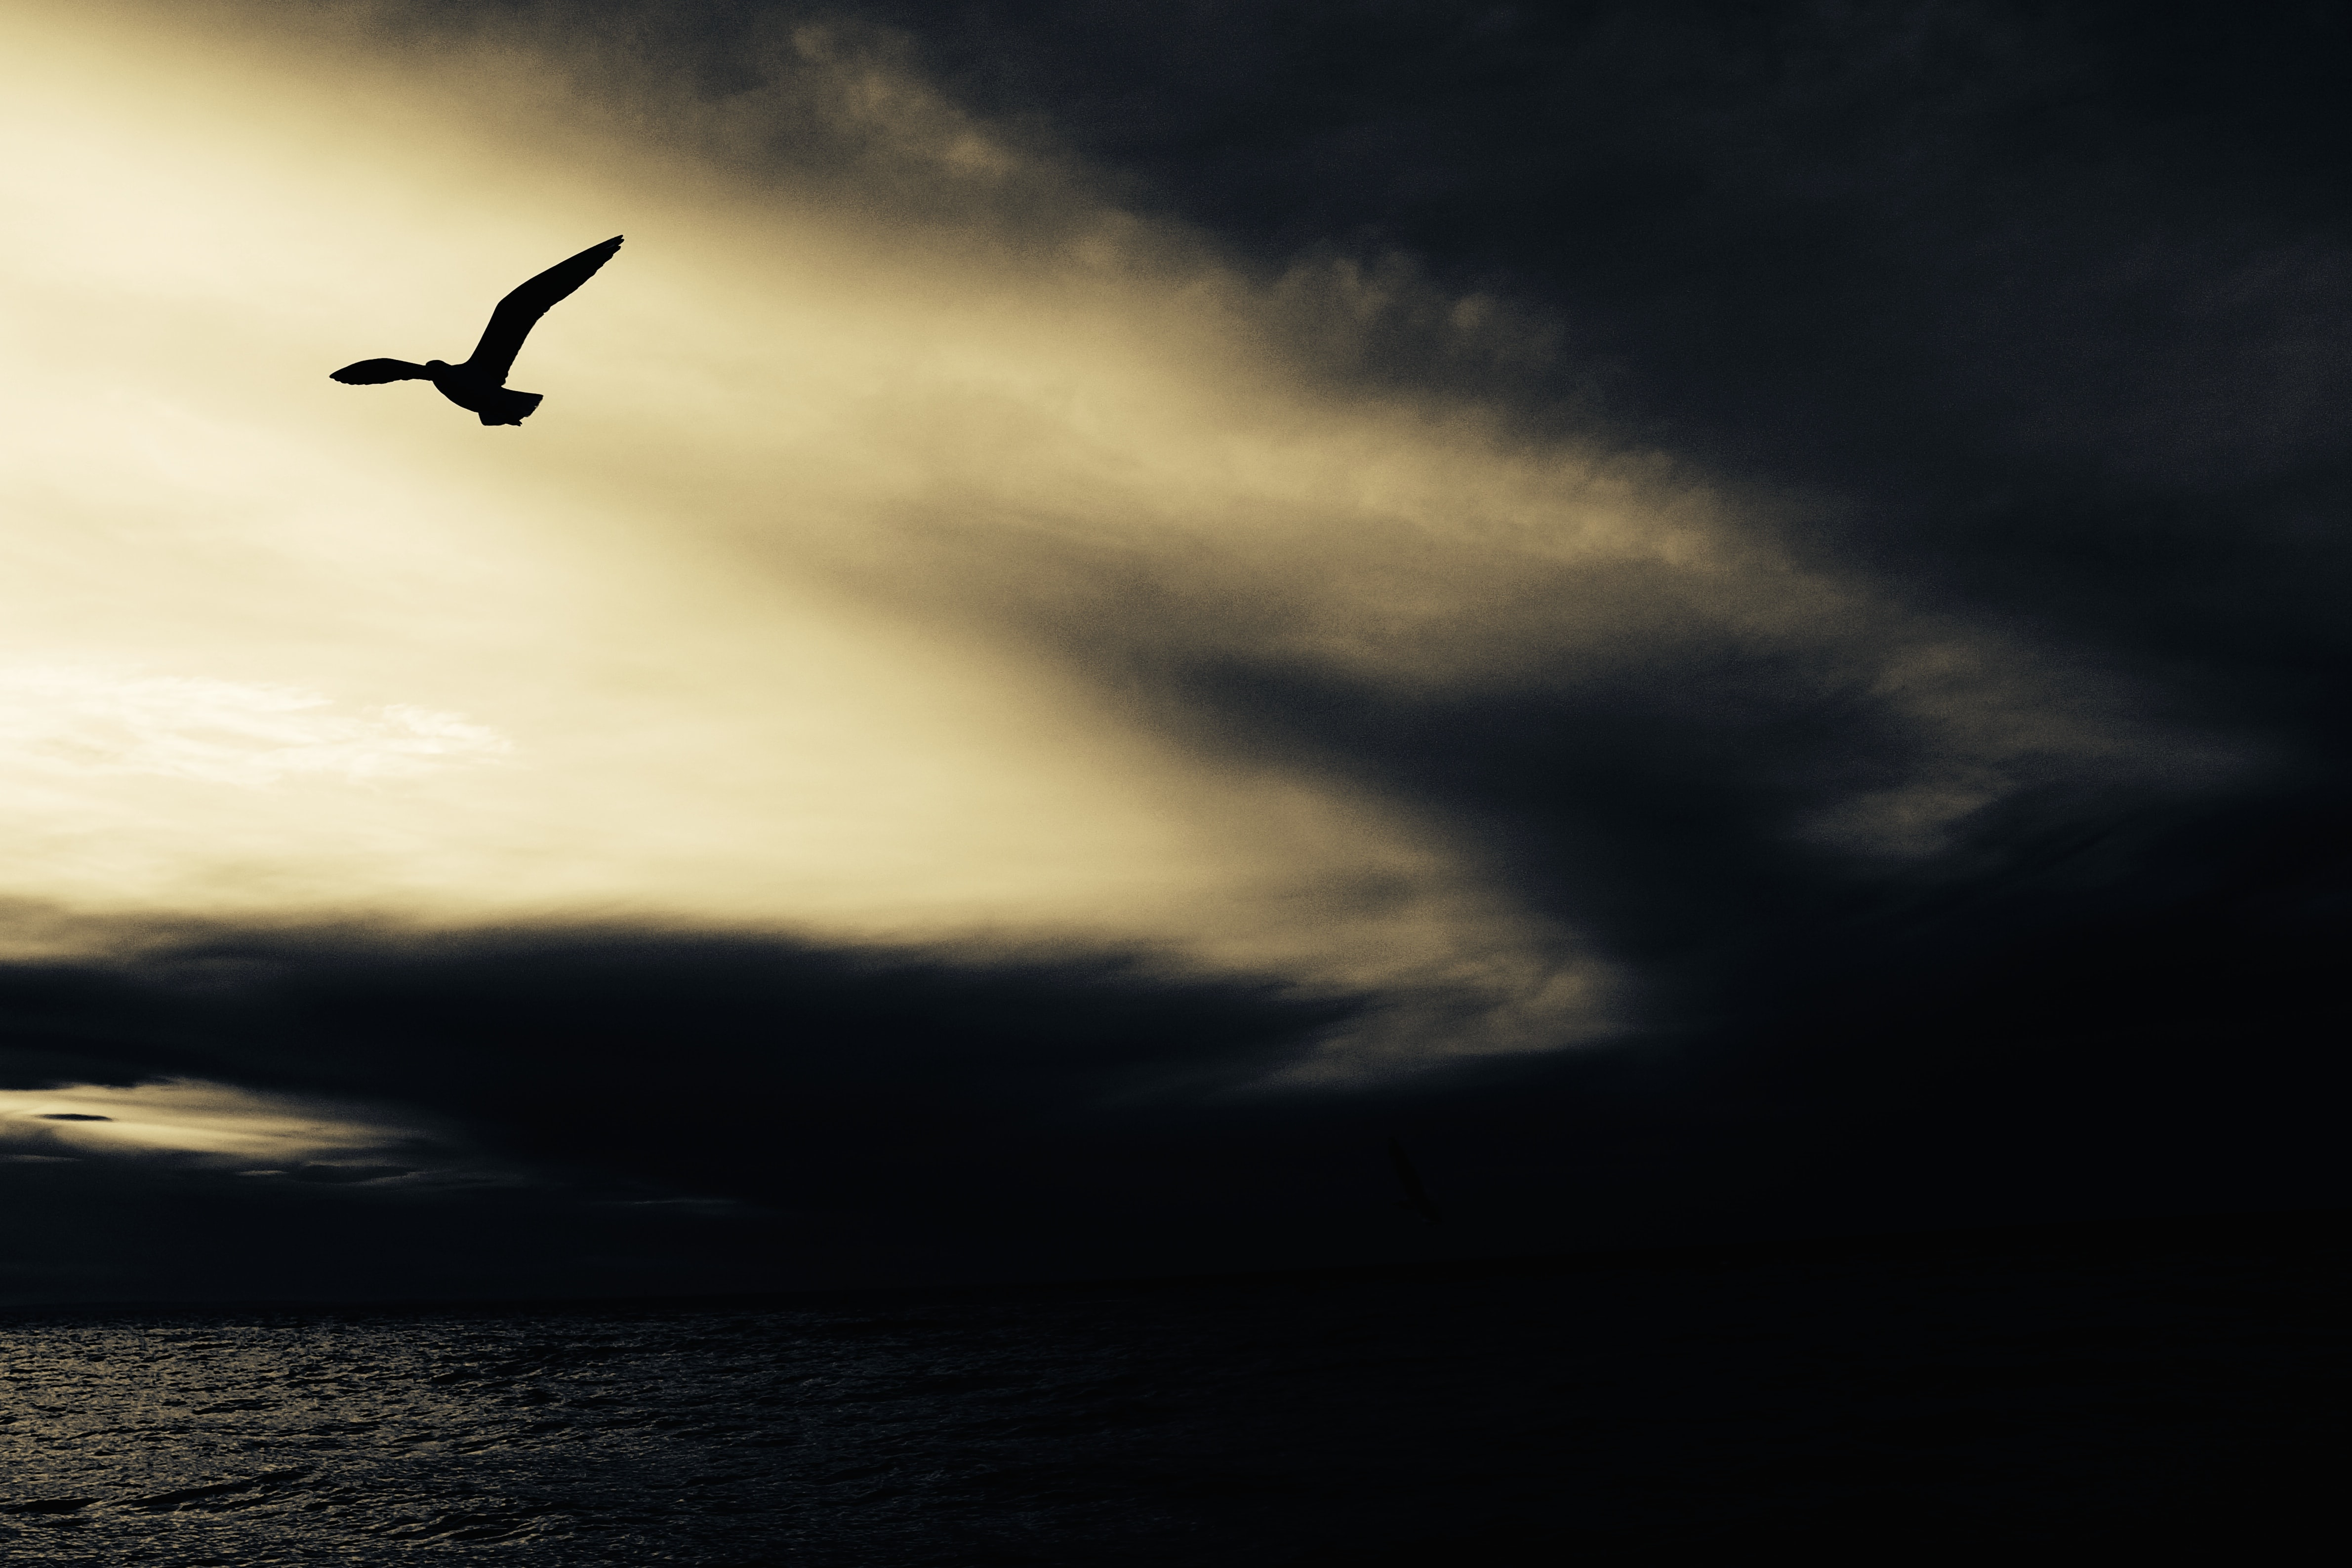 A silhouette of a bird in flight against a patch of light in the evening sky